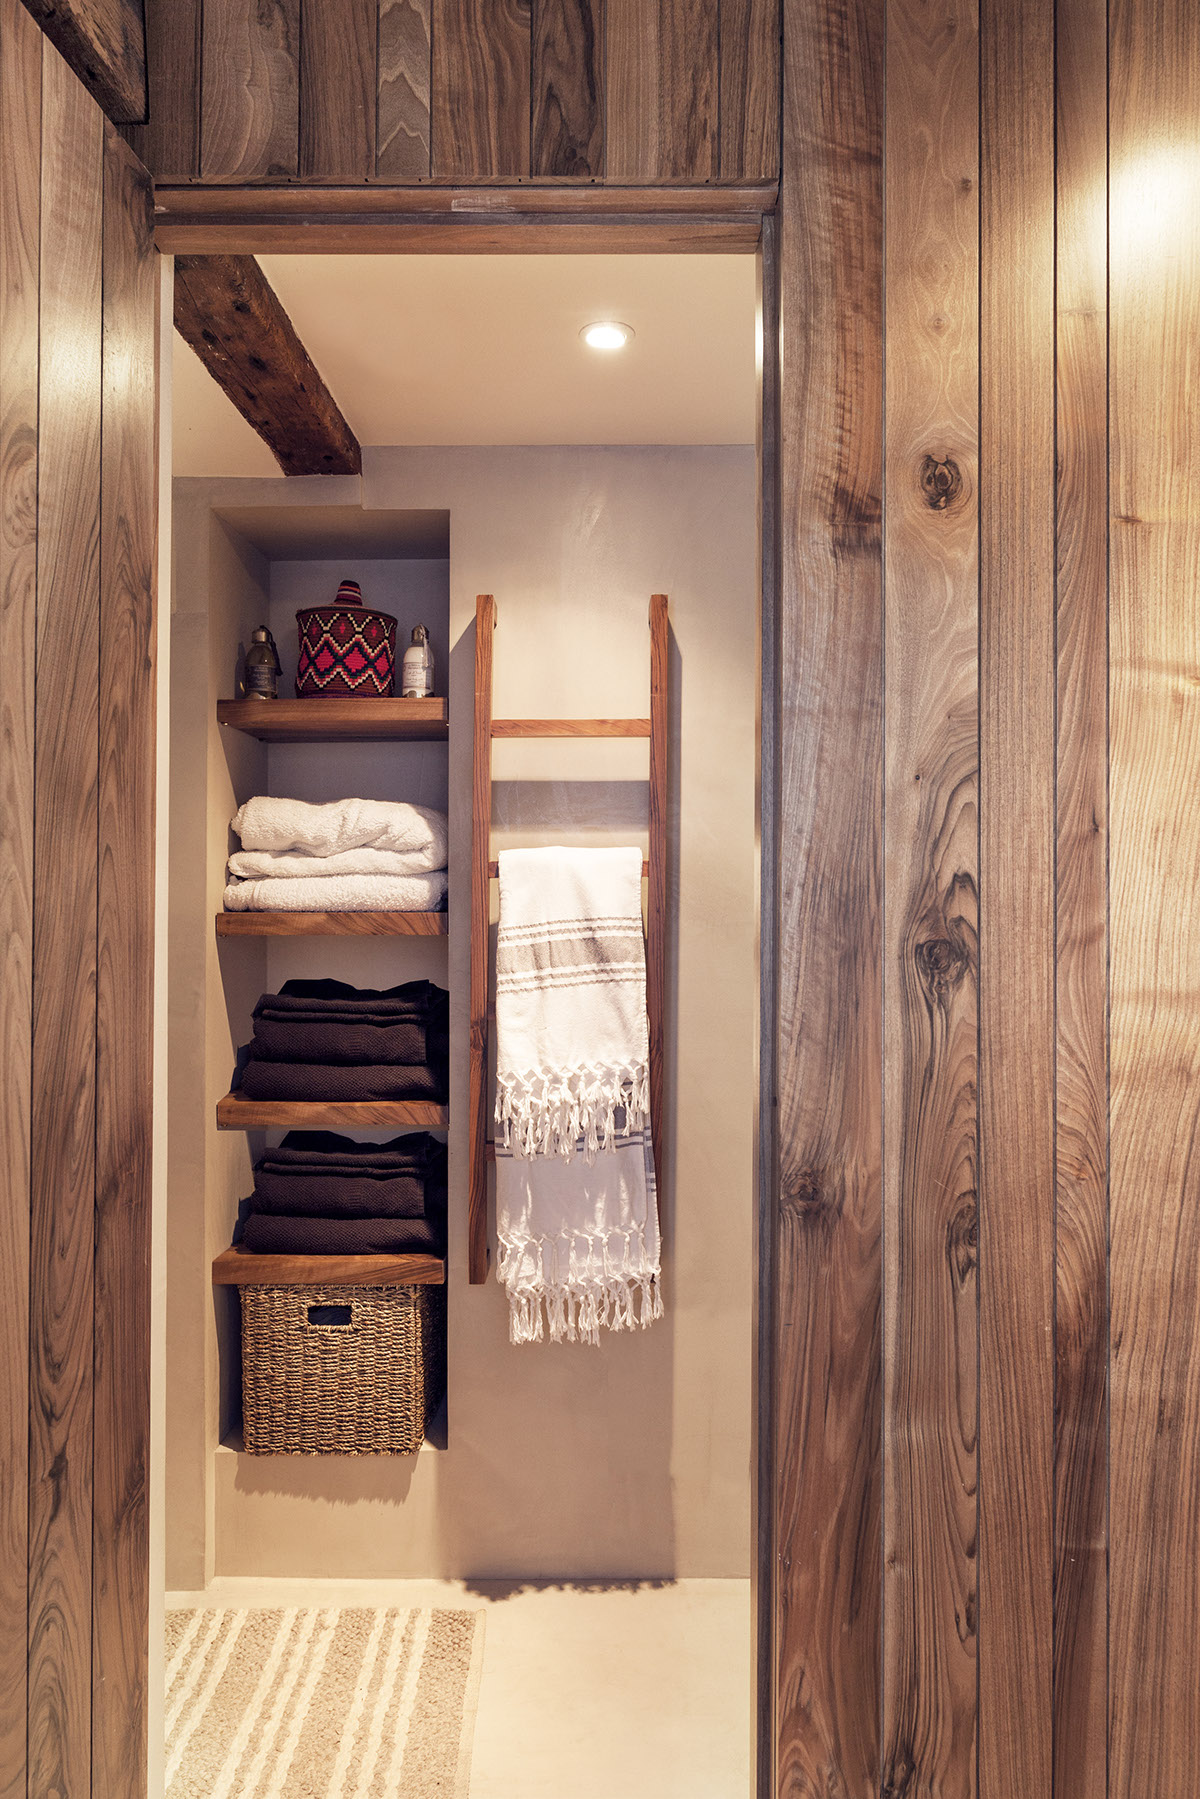 Linen Closet Shelving - 2 small and cute french apartments under 50 square meters